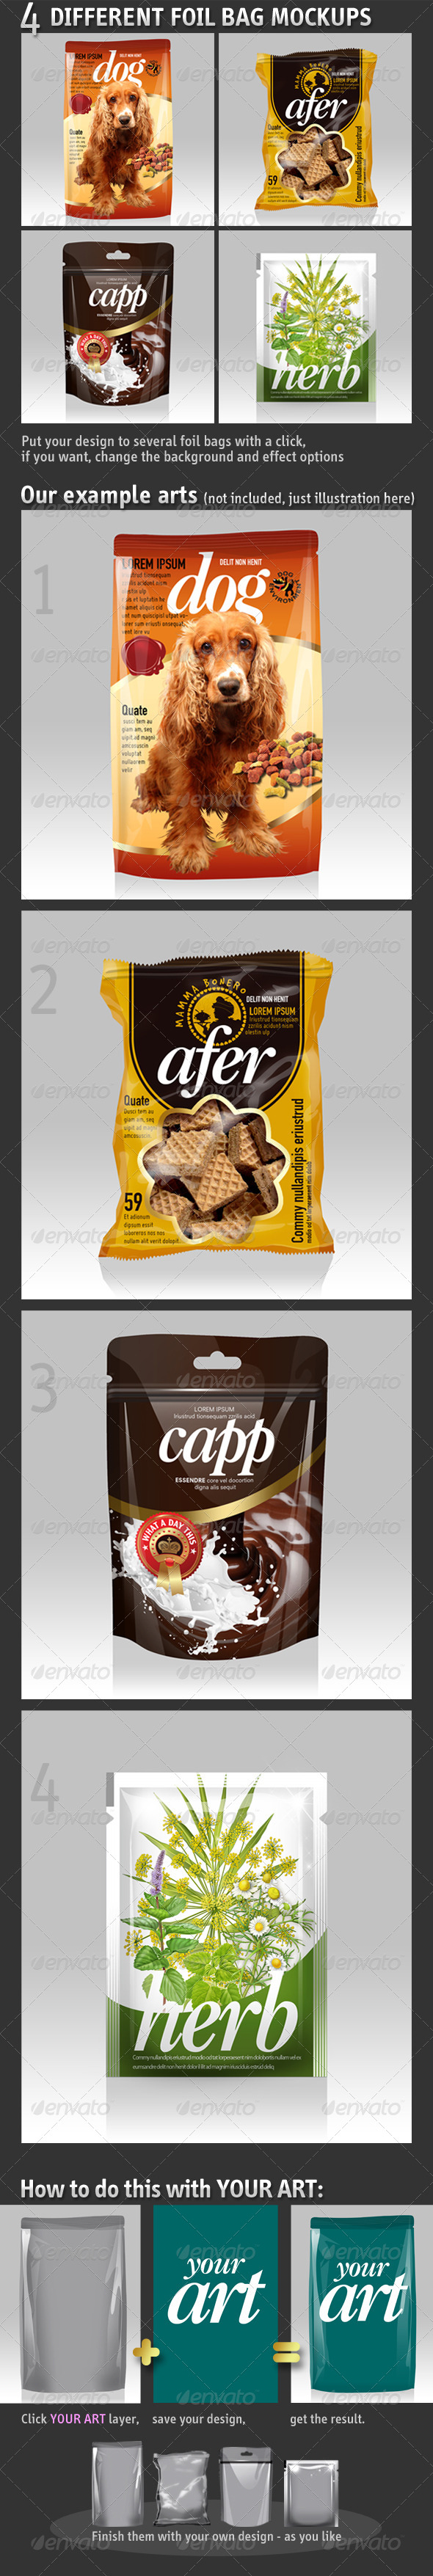 GraphicRiver 4 Different Foil Bags Packaging Mockups 5427126